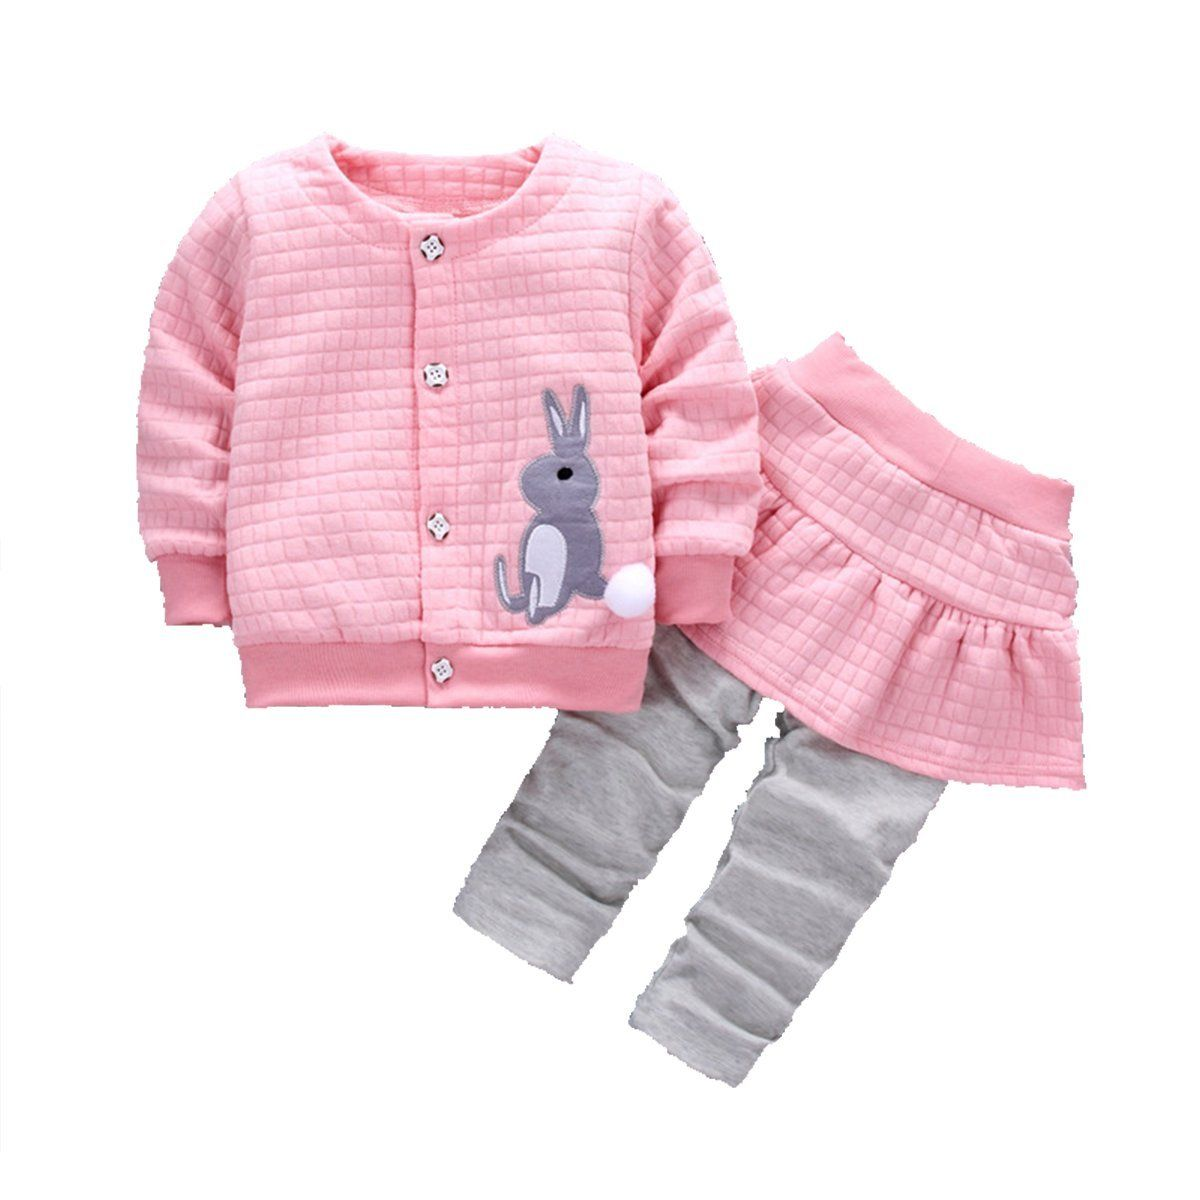 Baby Kids Boy Clothes 2pcs Suit Tops Pants Leggings Christmas Outfits Cute Gifts